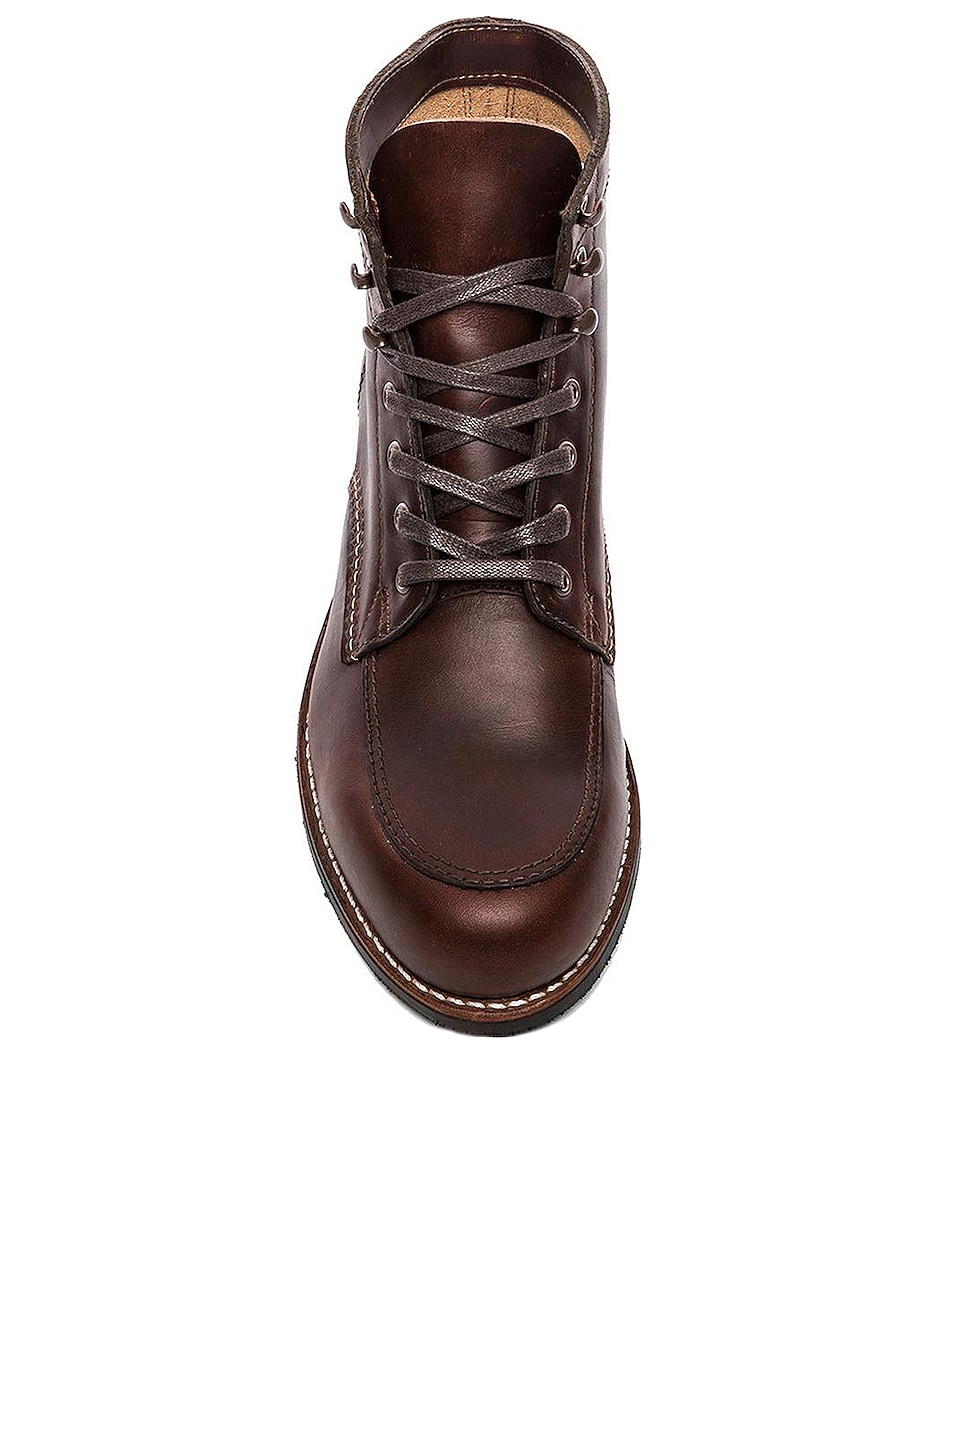 Wolverine 1000 Mile Courtland Boot in Brown